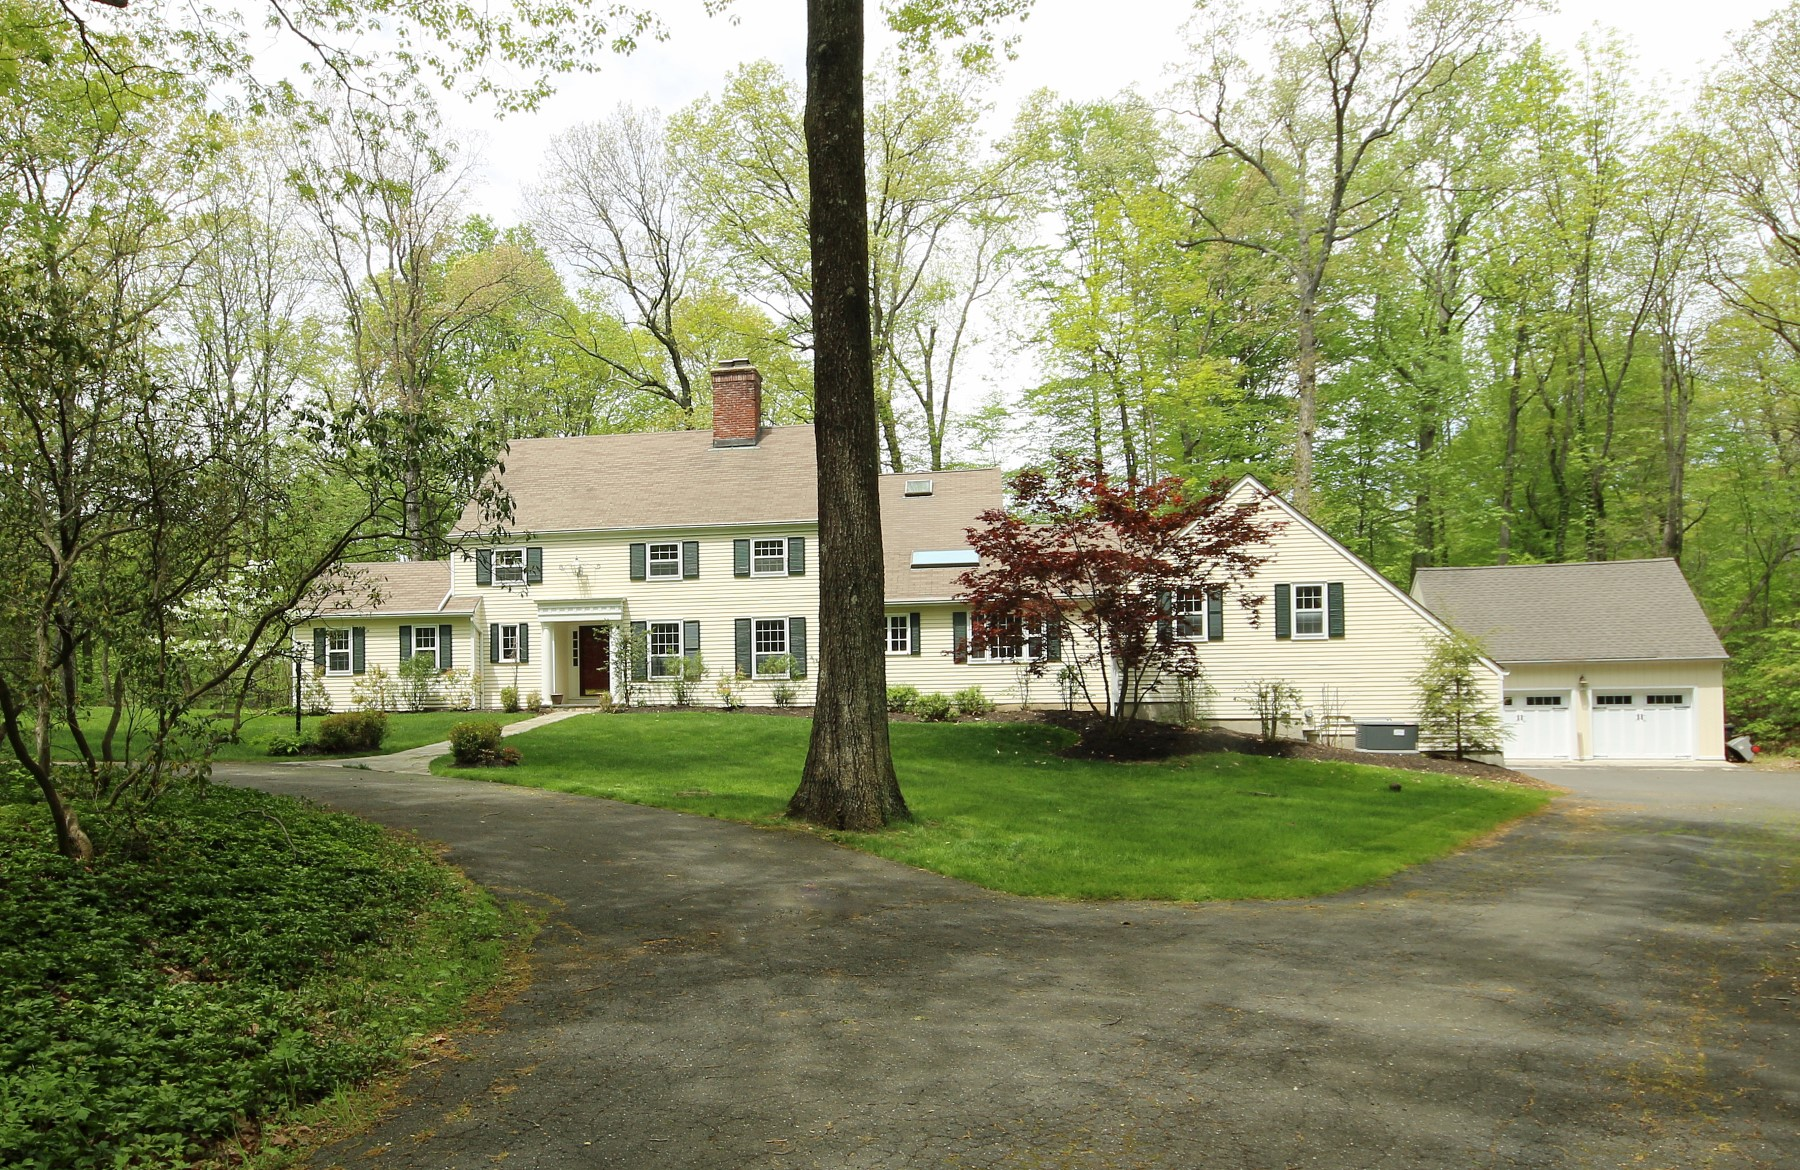 Single Family Home for Sale at Sprawling Home on 2 Level Acres 14 Pelham Lane Ridgefield, Connecticut, 06877 United States